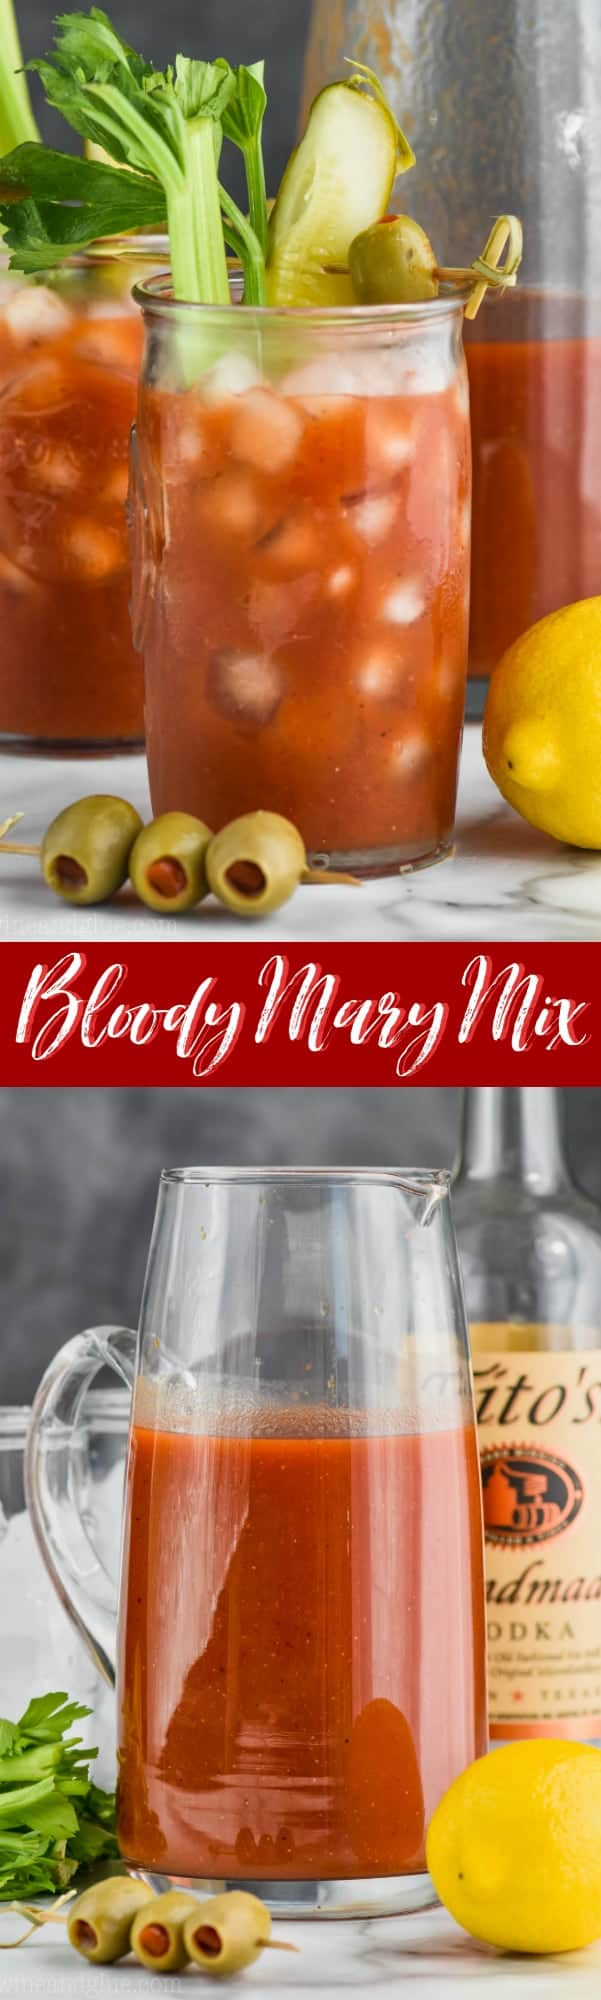 a glass of the best bloody mary mix recipe